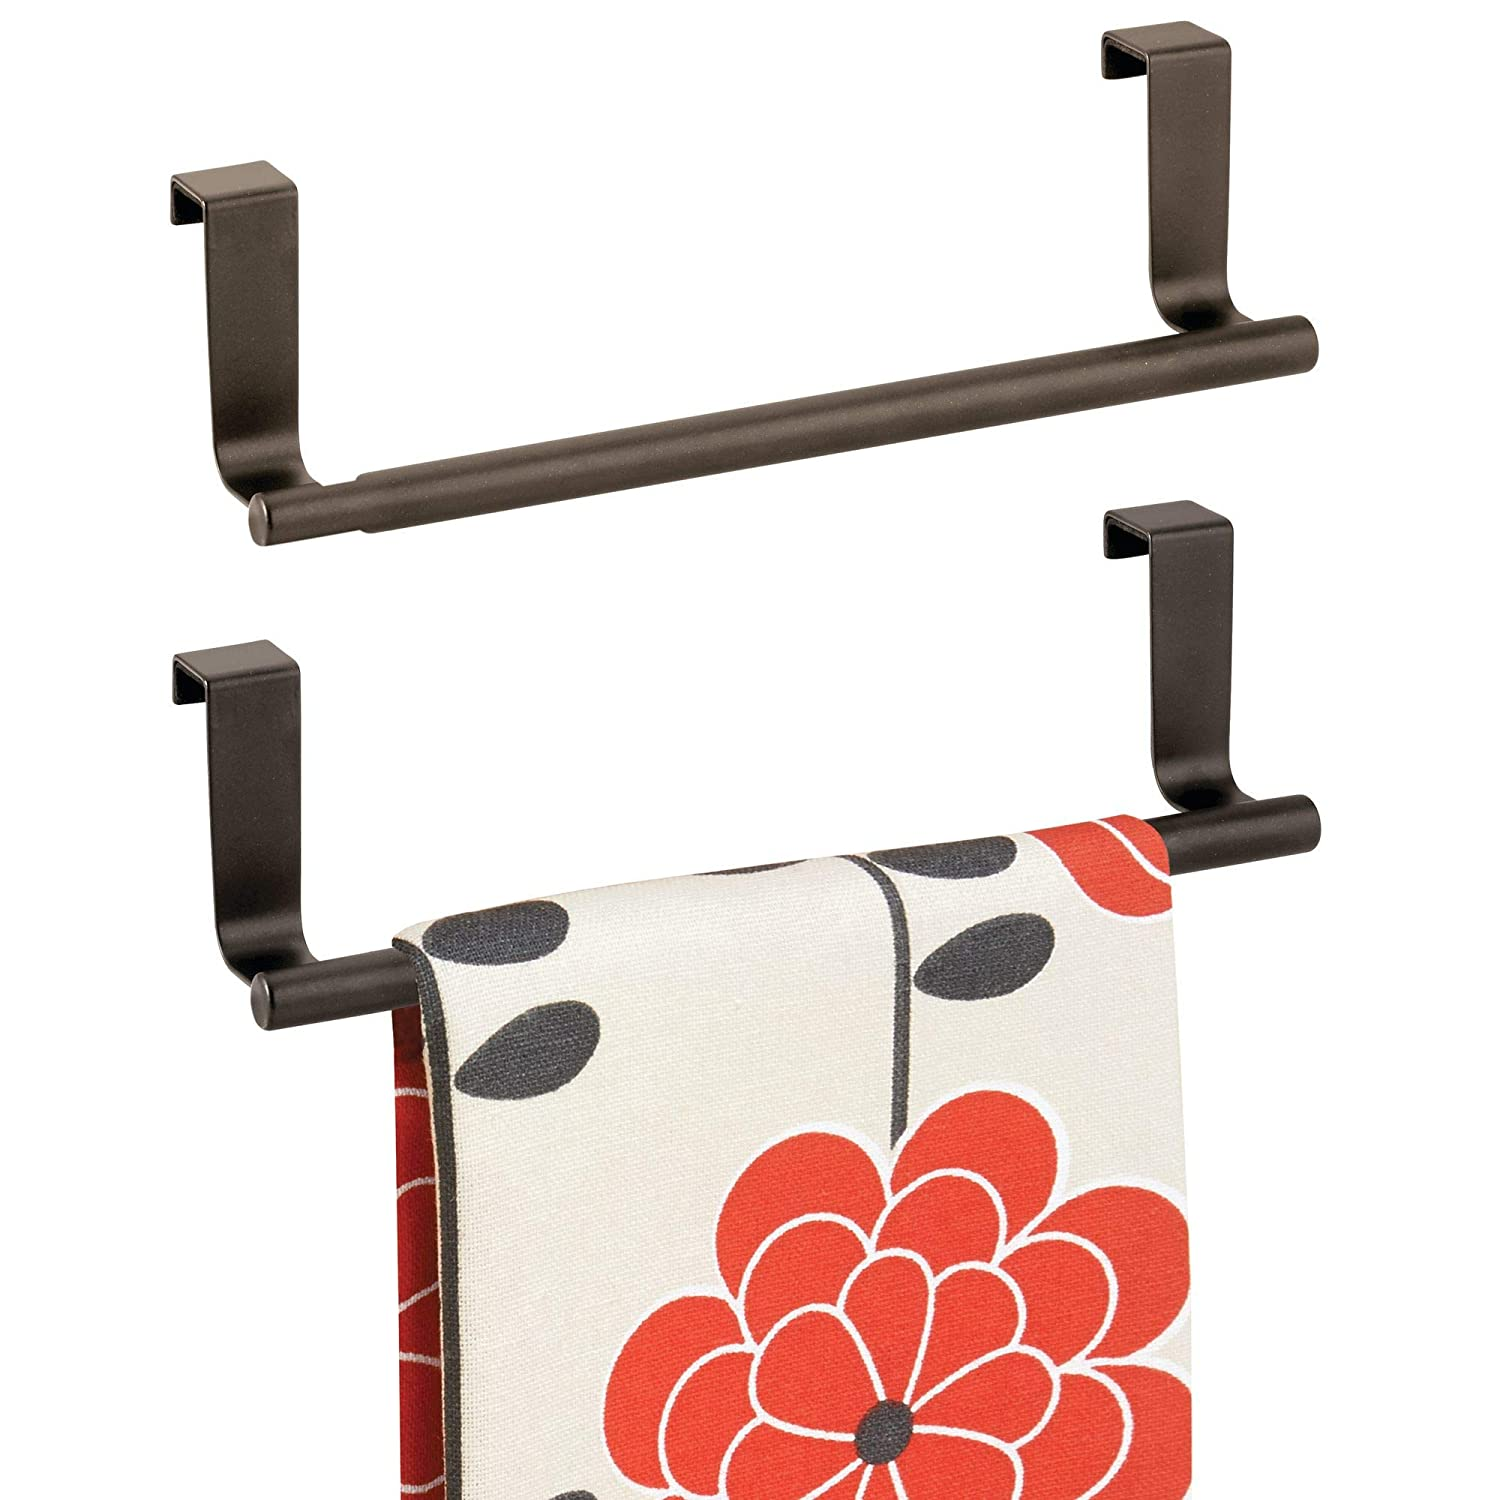 "mDesign Decorative Metal Kitchen Over Cabinet Towel Bar - Hang on Inside or Outside of Doors, Storage and Display Rack for Hand, Dish, and Tea Towels - 9.8"" Wide, 2 Pack - Bronze"